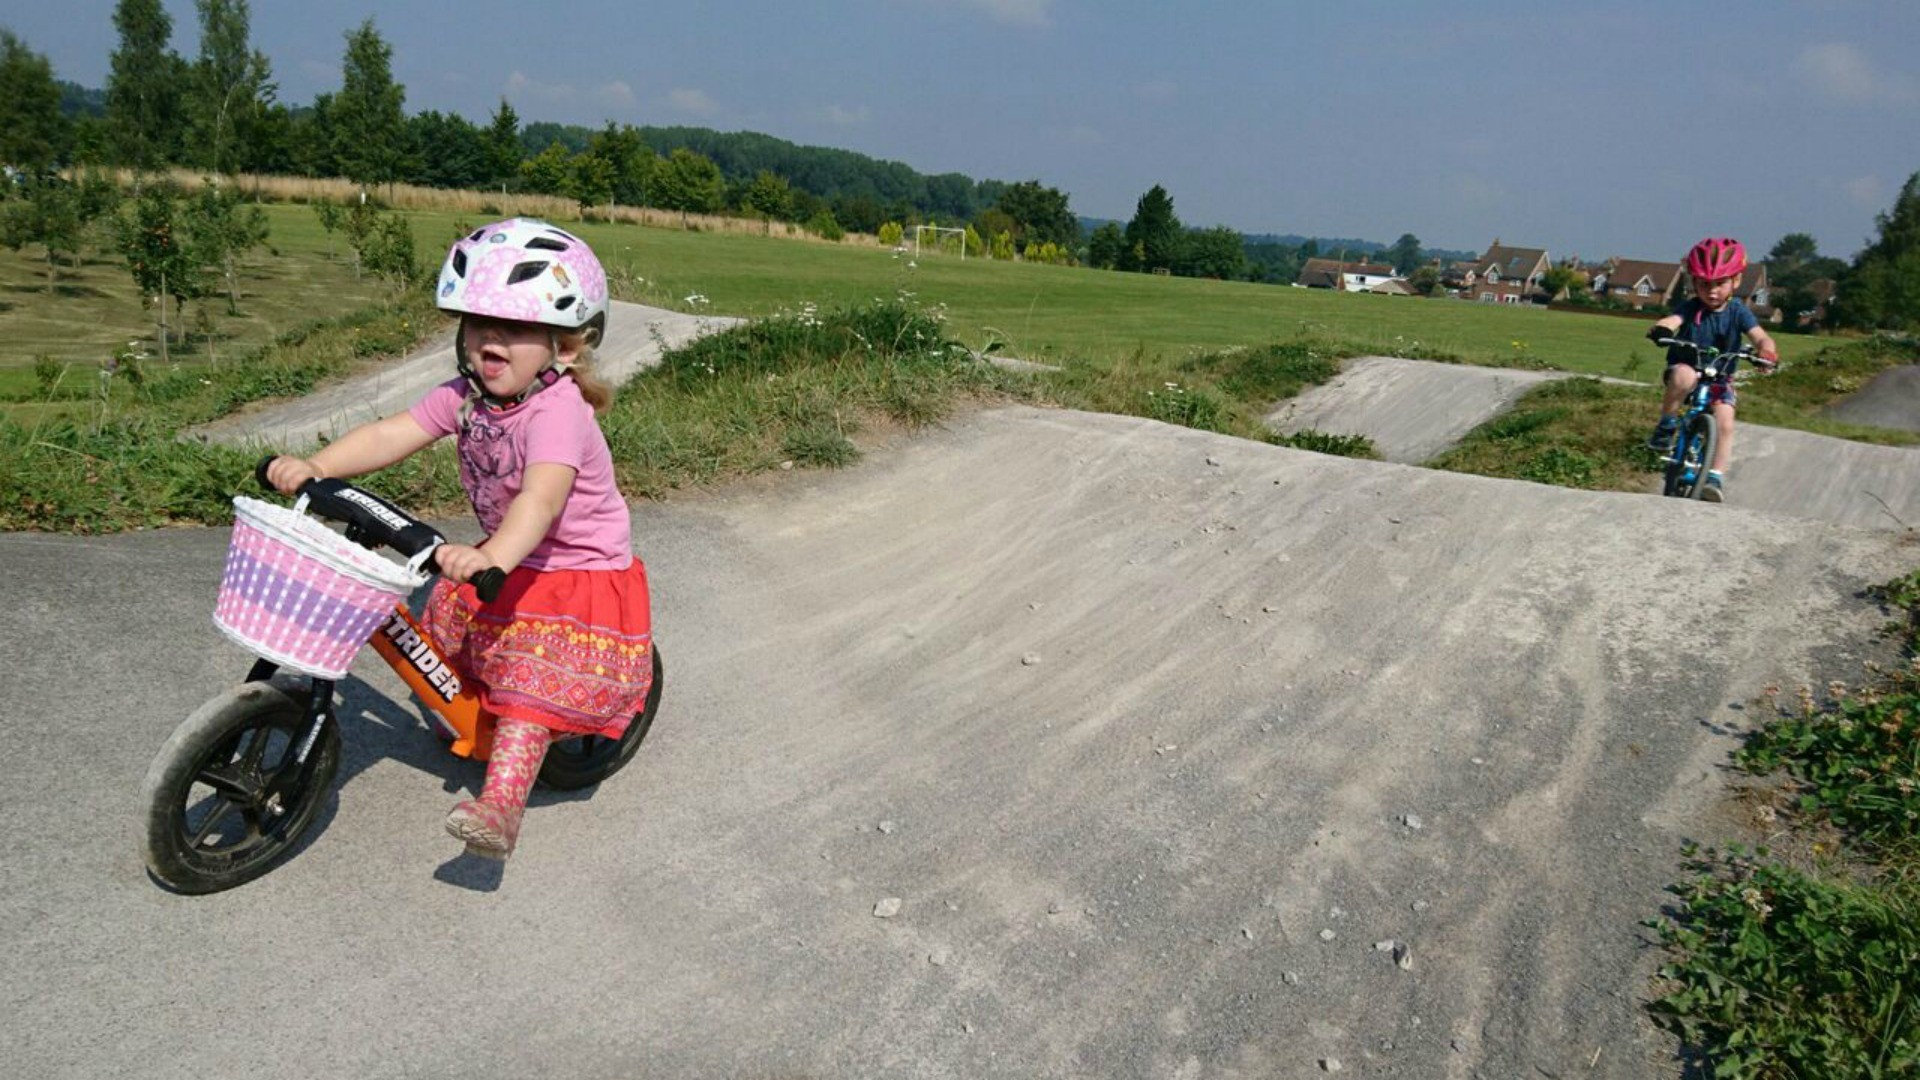 Just think: local pump tracks could be where our future world champs get their first taste for riding!